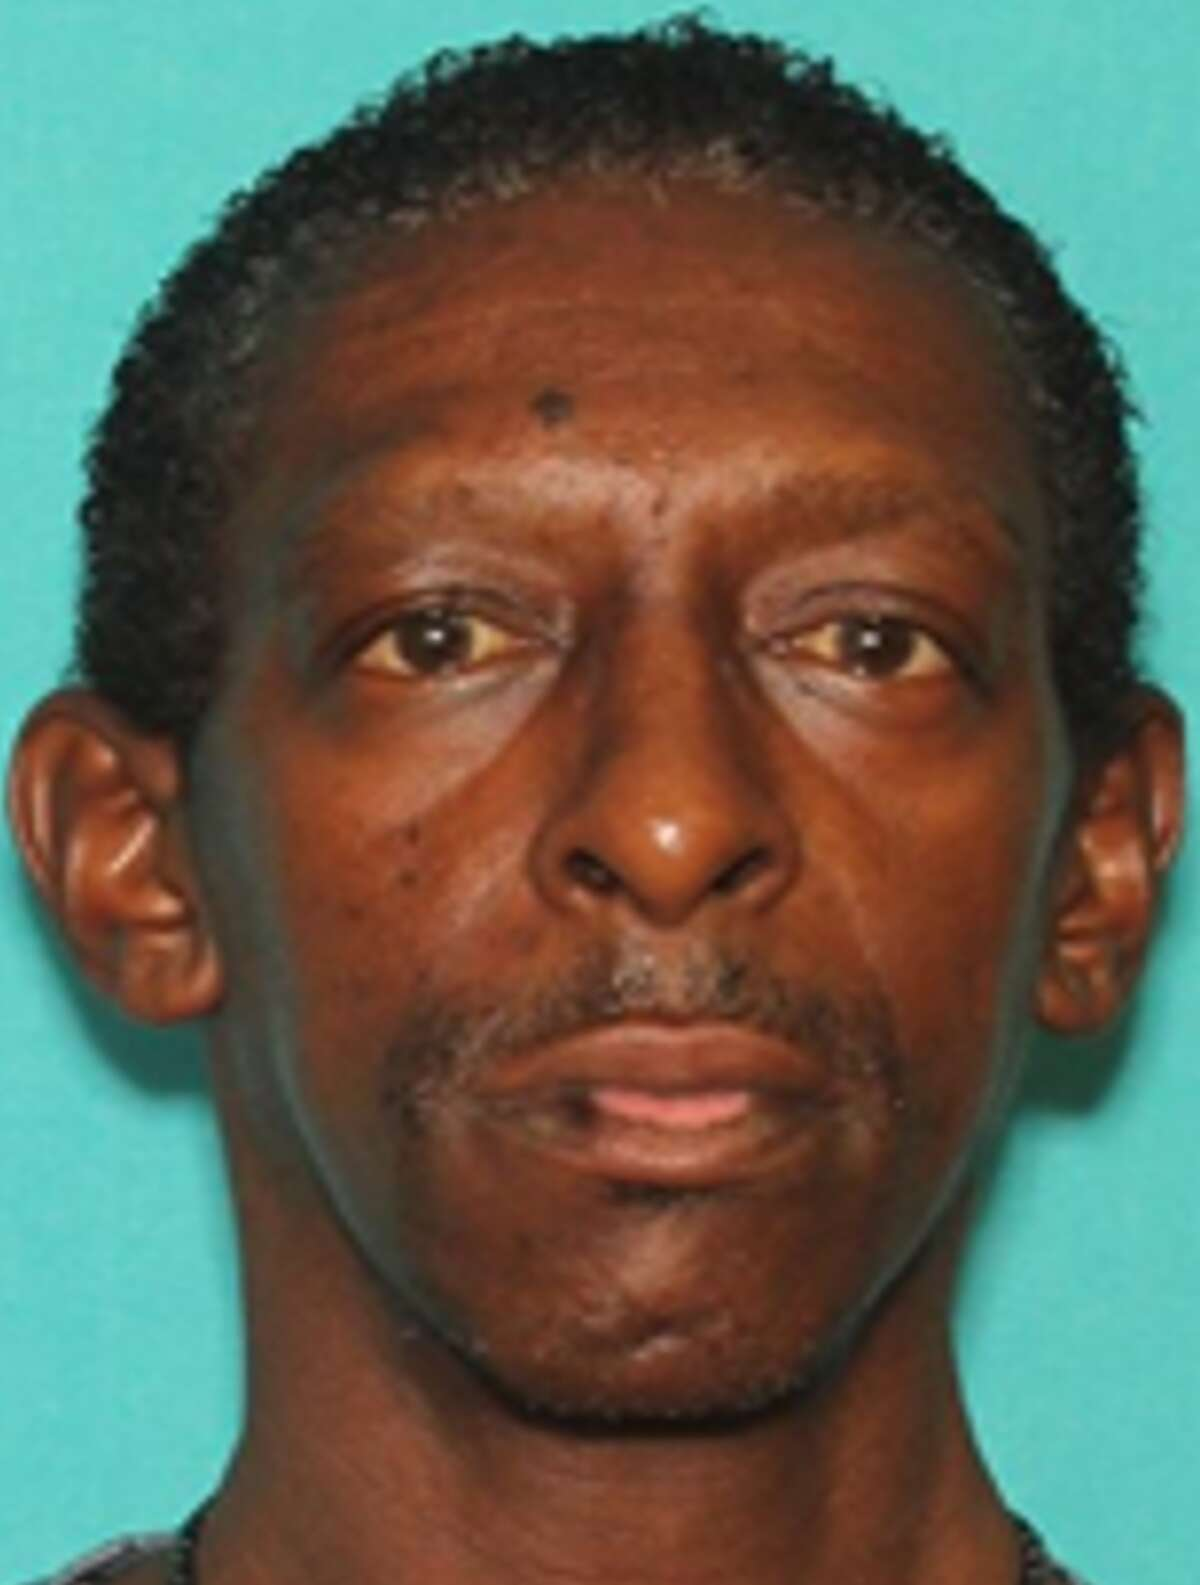 Case: Homicide victim Alfred ThompsonDate: Aug. 6, 2017 Summary: Alfred Thompson, 49, was found dead around 8:30 a.m. on Aug. 6 under the Salado Creek bridge in the 3400 block of East Commerce. He was last seen alive two days earlier.